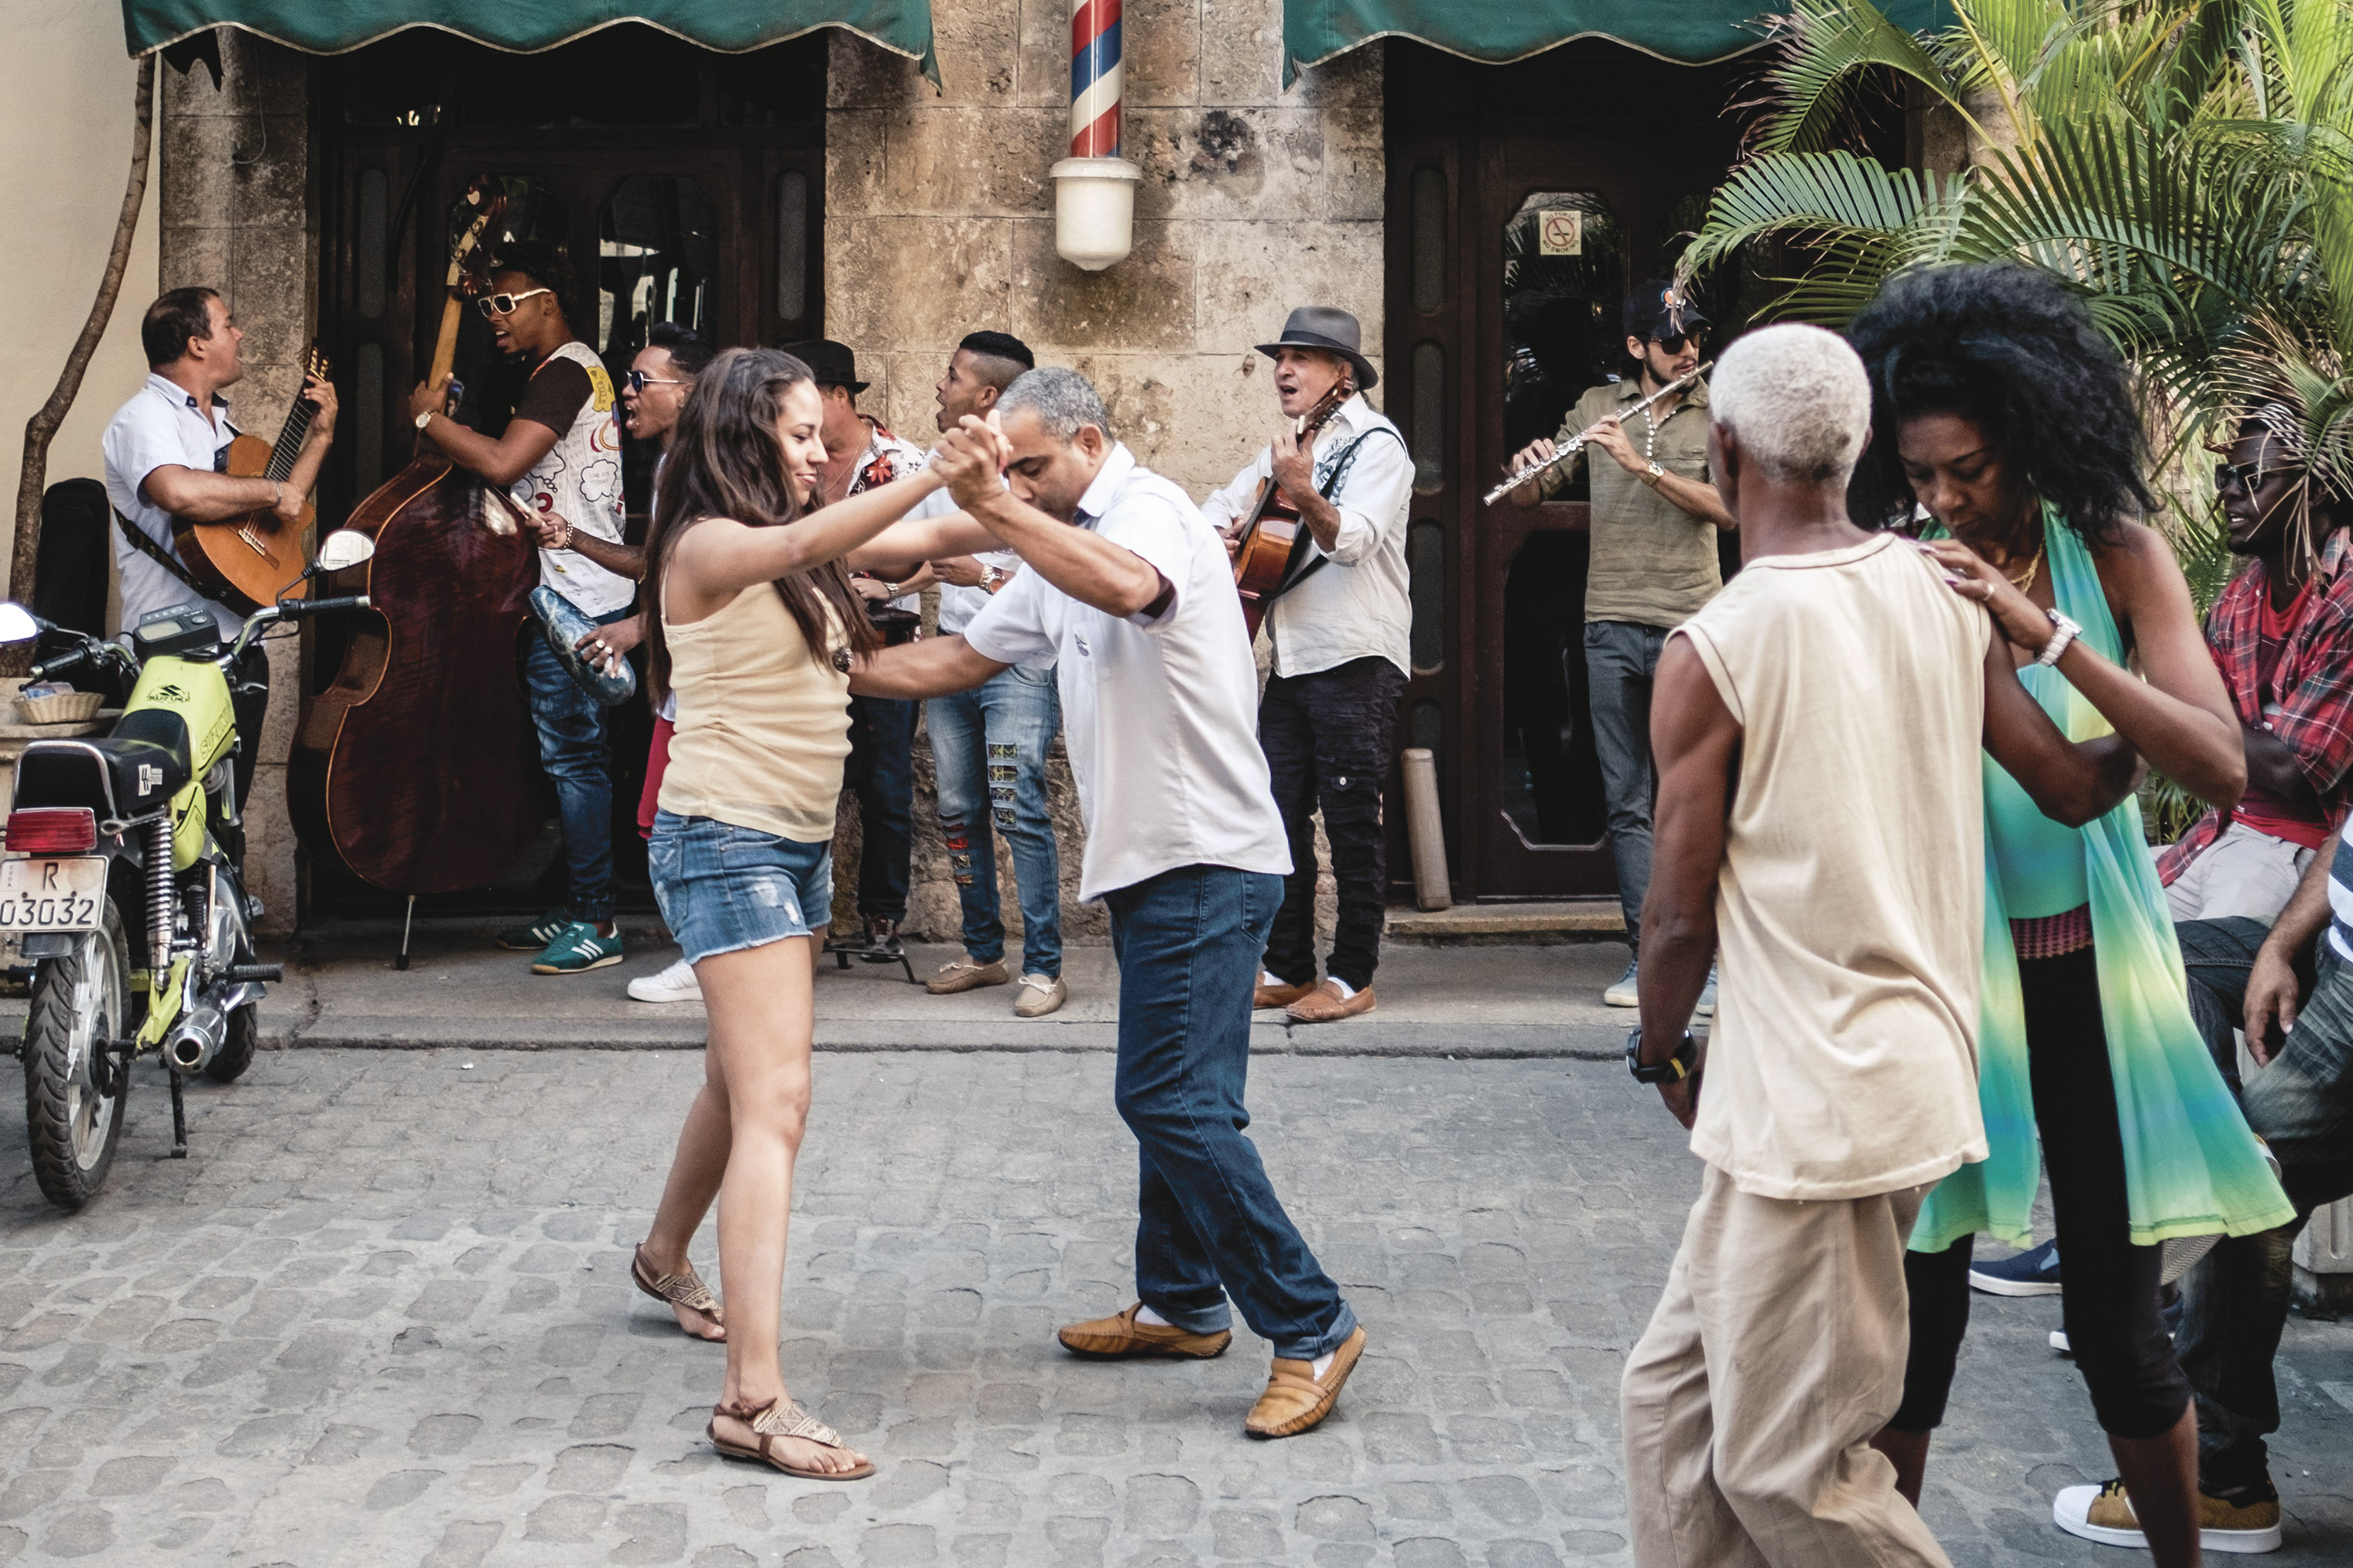 People dance in the streets of Old Havana.